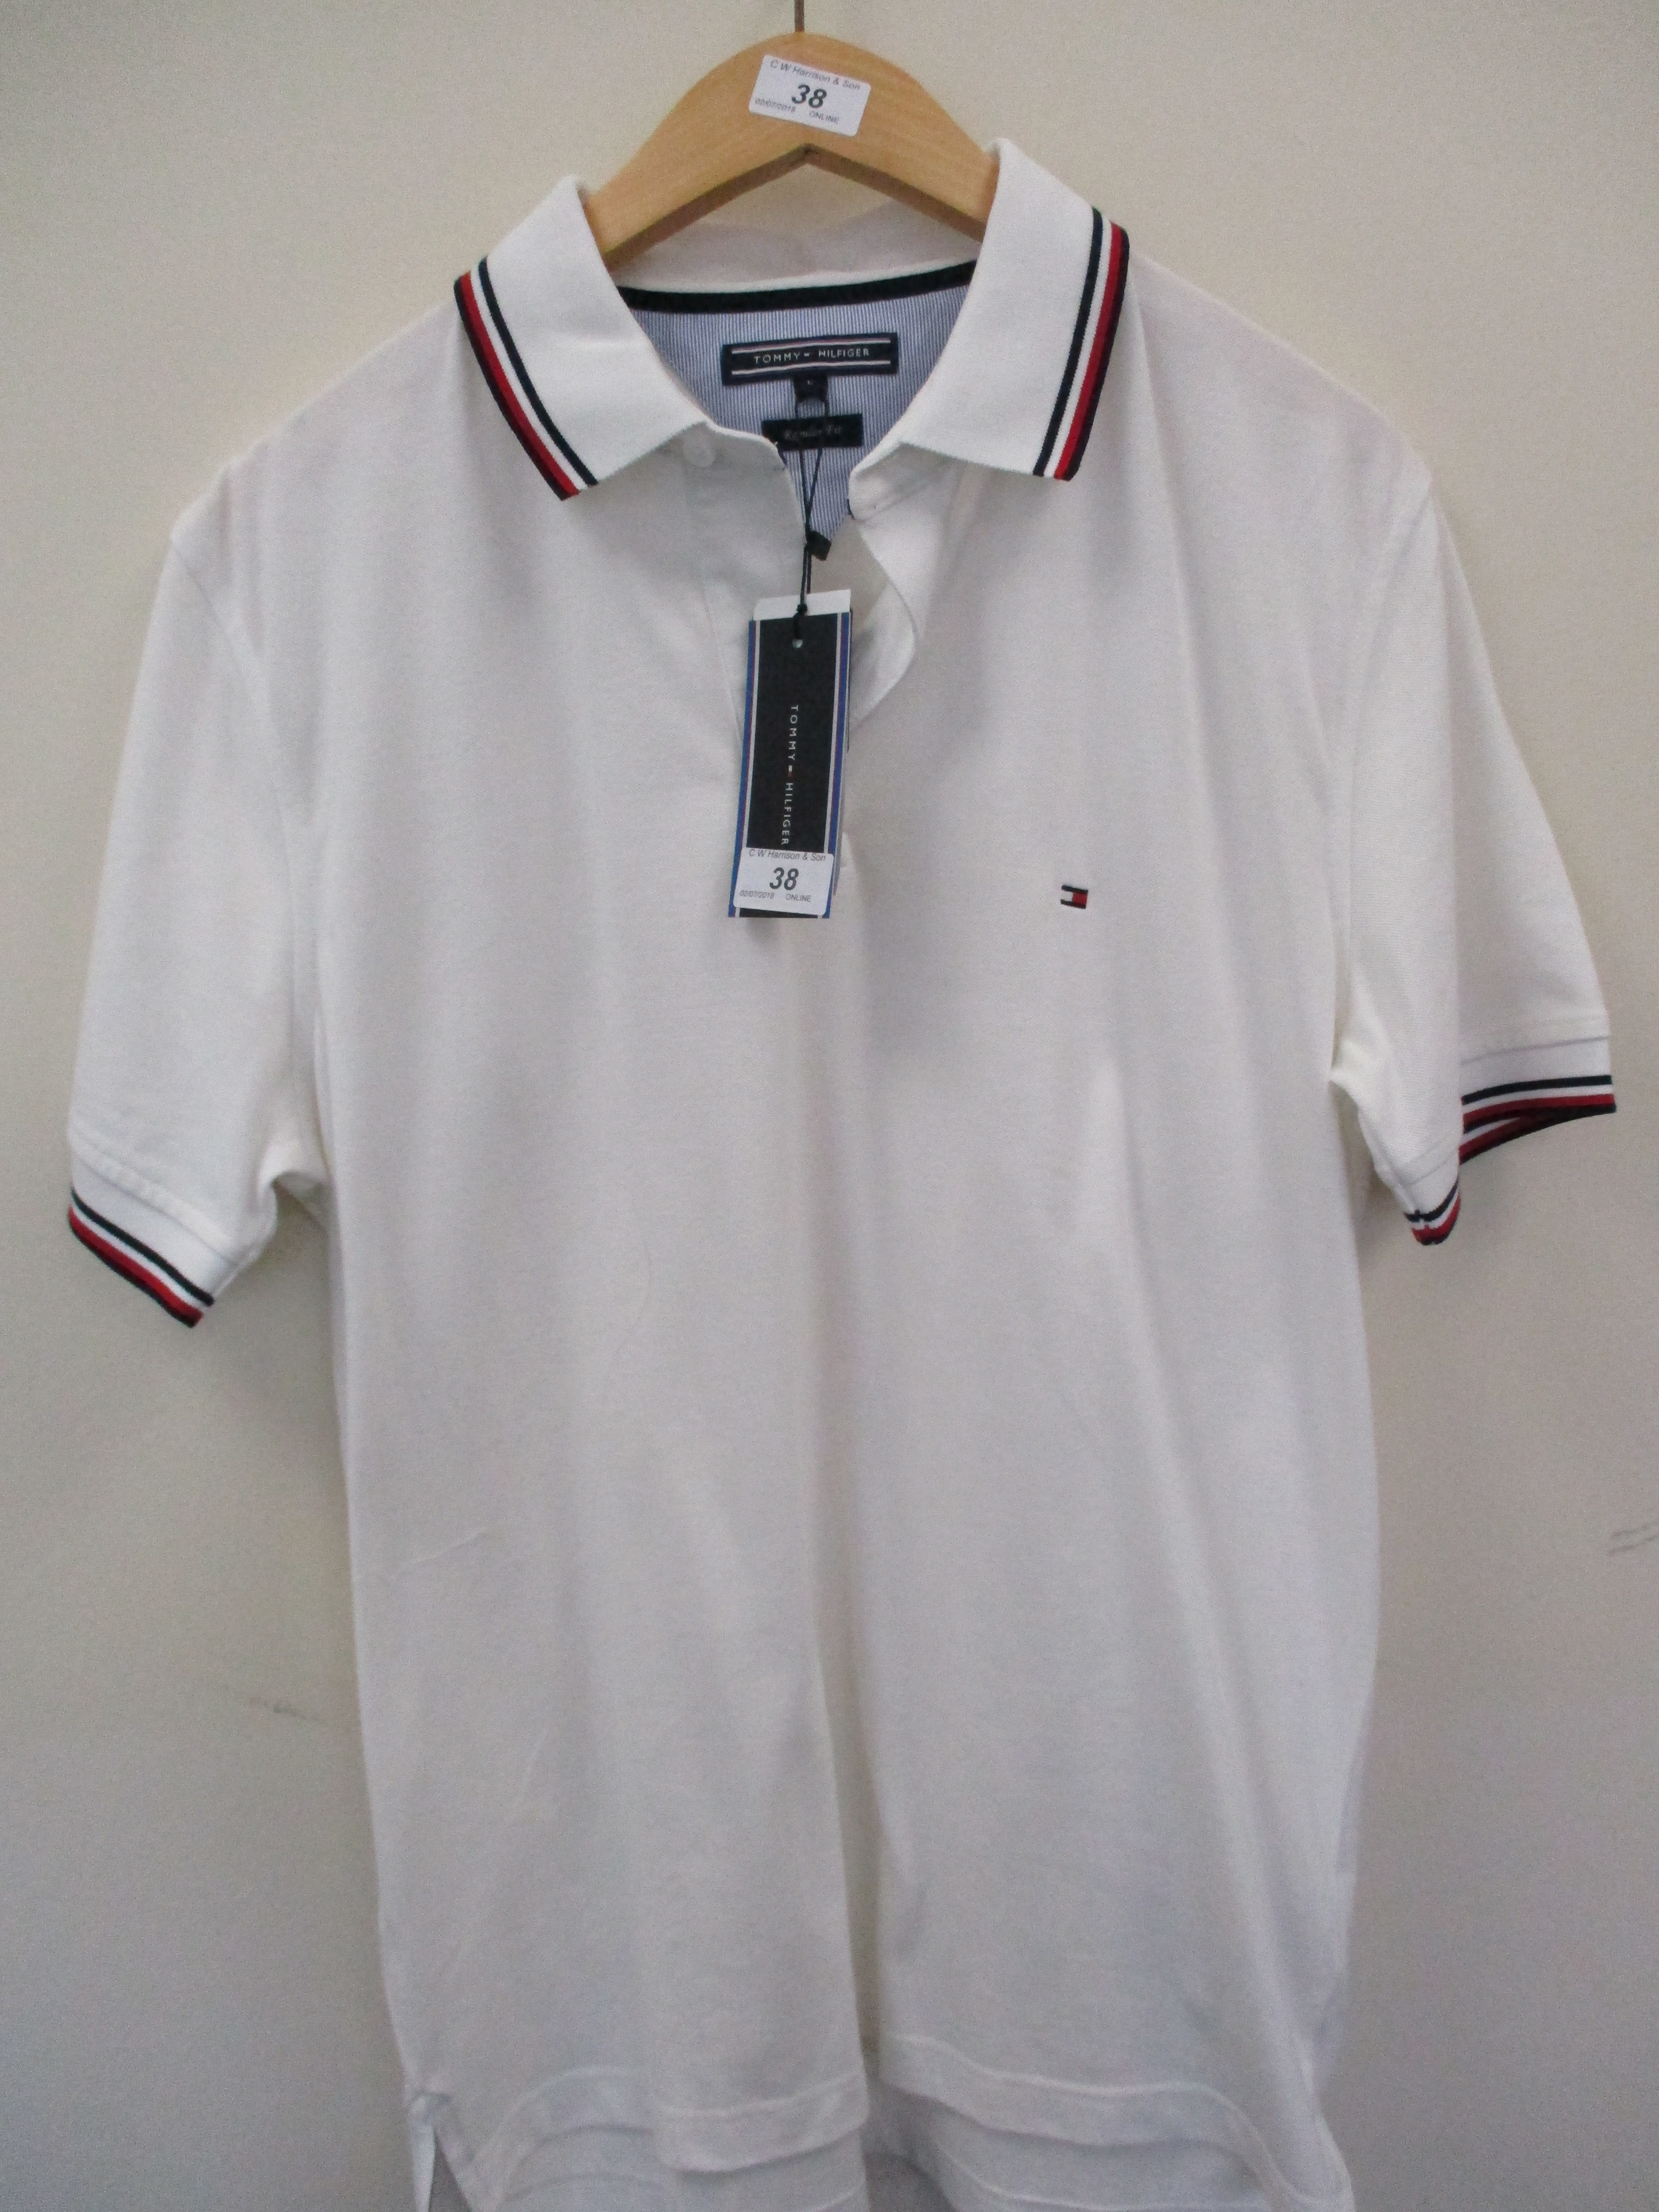 Lot 38 - Tommy Hilfiger polo shirt - white - large RRP £75